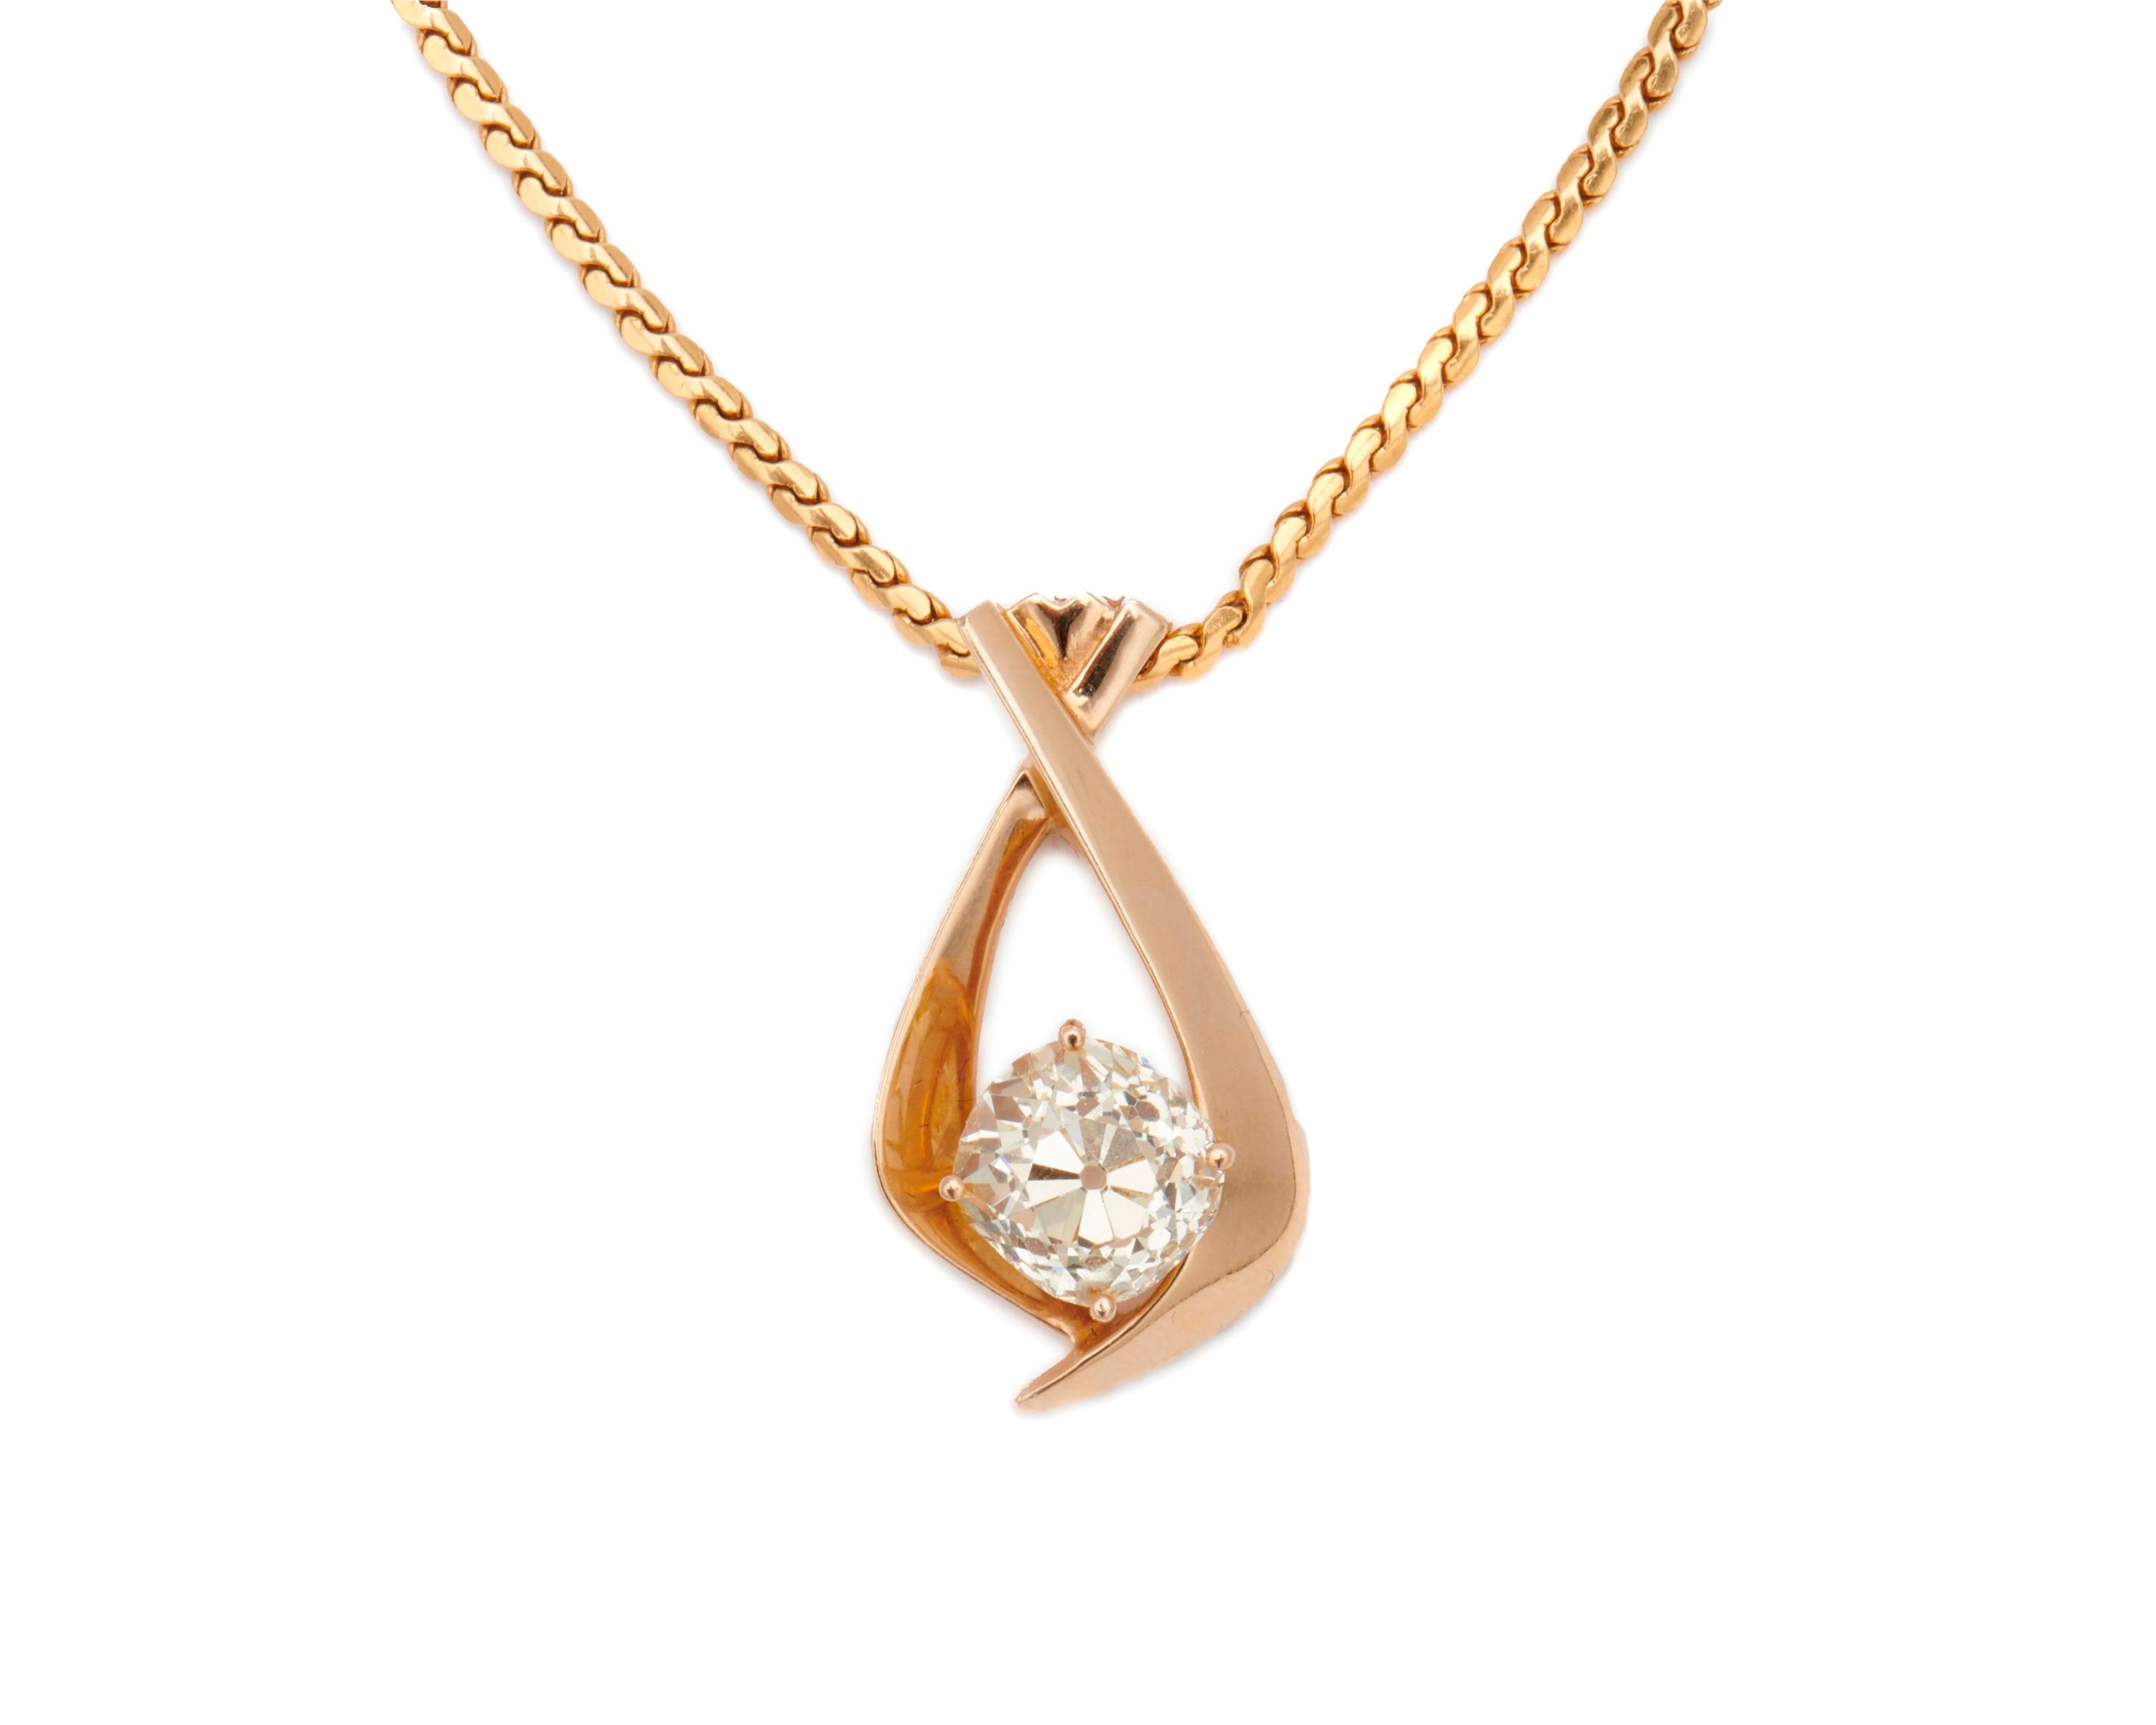 14K Gold and Diamond Pendant Necklace